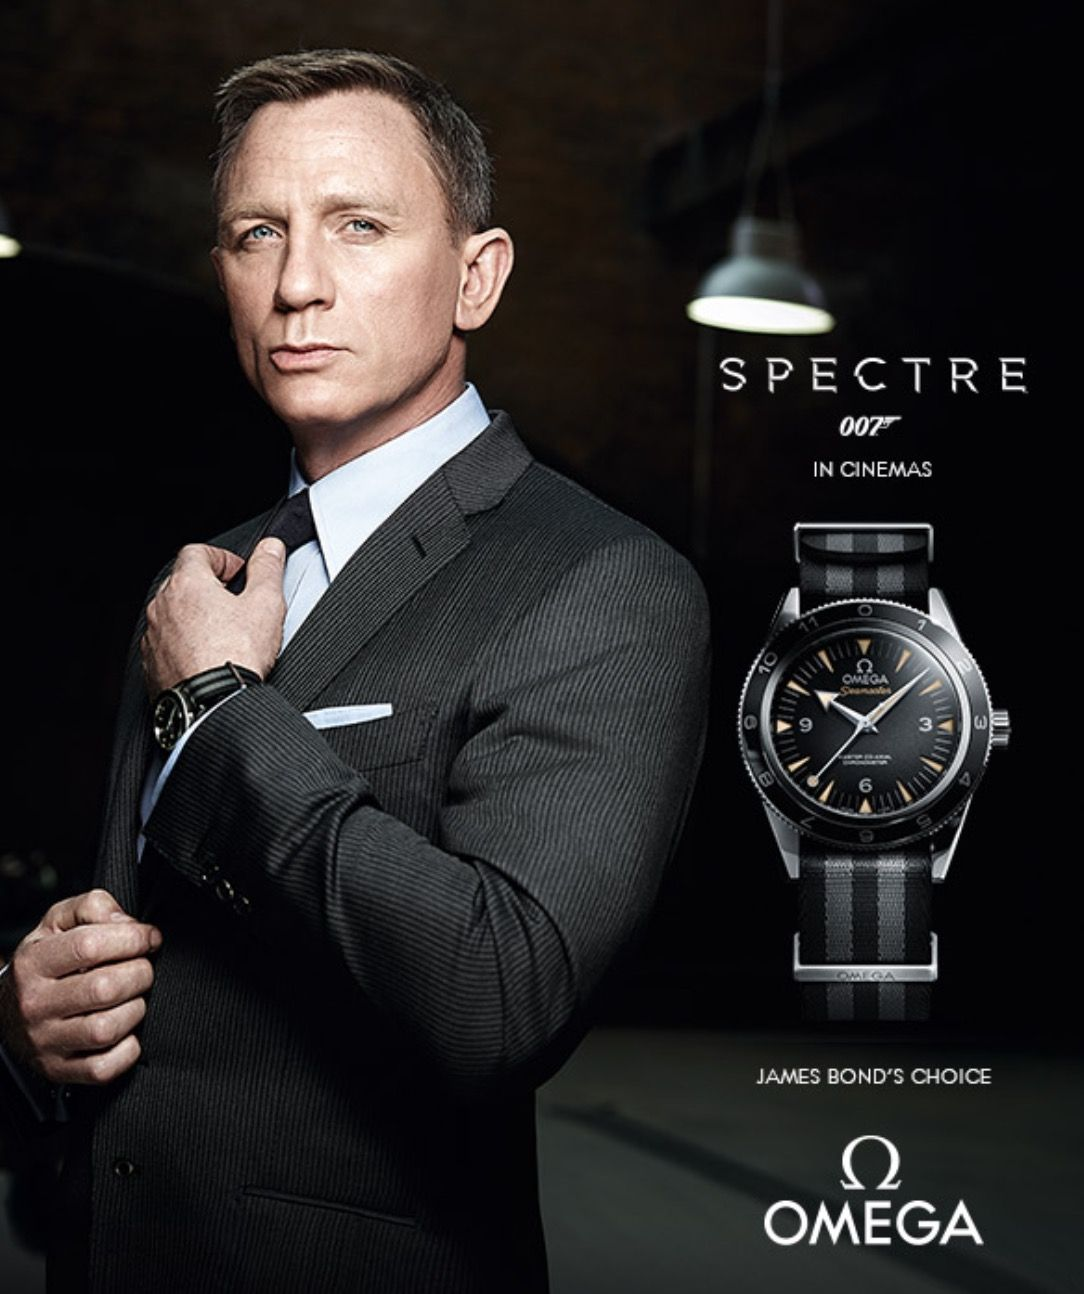 The limited edition James Bond Spectre Watch Omega JamesBond 1084x1294